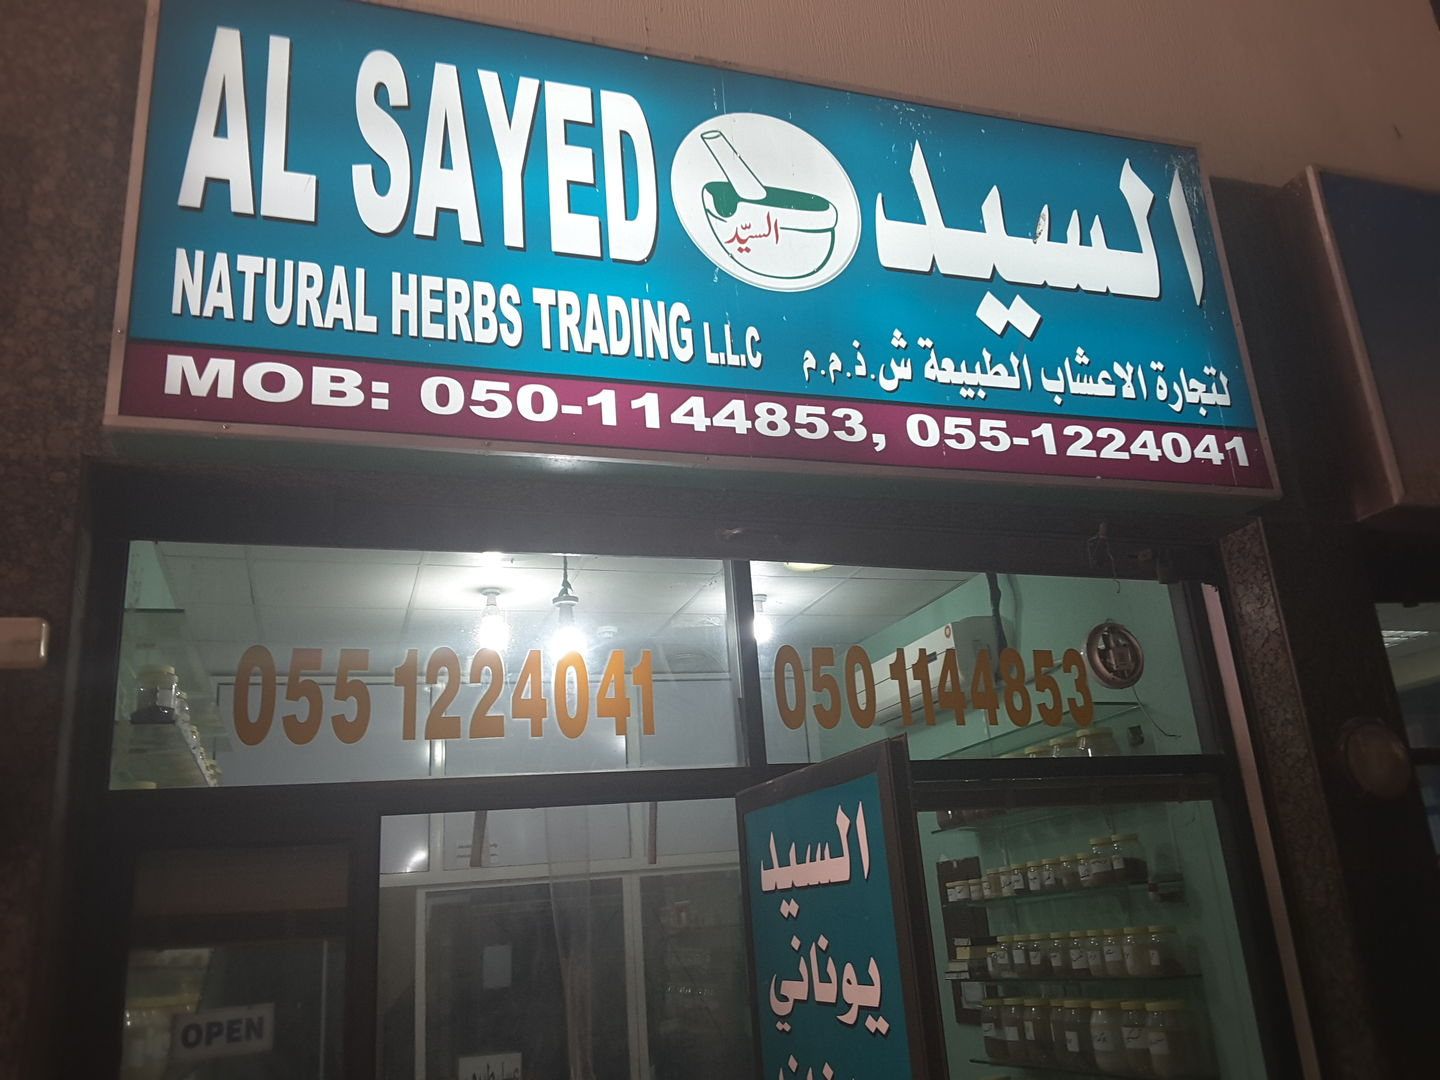 HiDubai-business-al-sayed-natural-herbs-trading-food-beverage-health-food-supplement-stores-meena-bazar-al-souq-al-kabeer-dubai-2